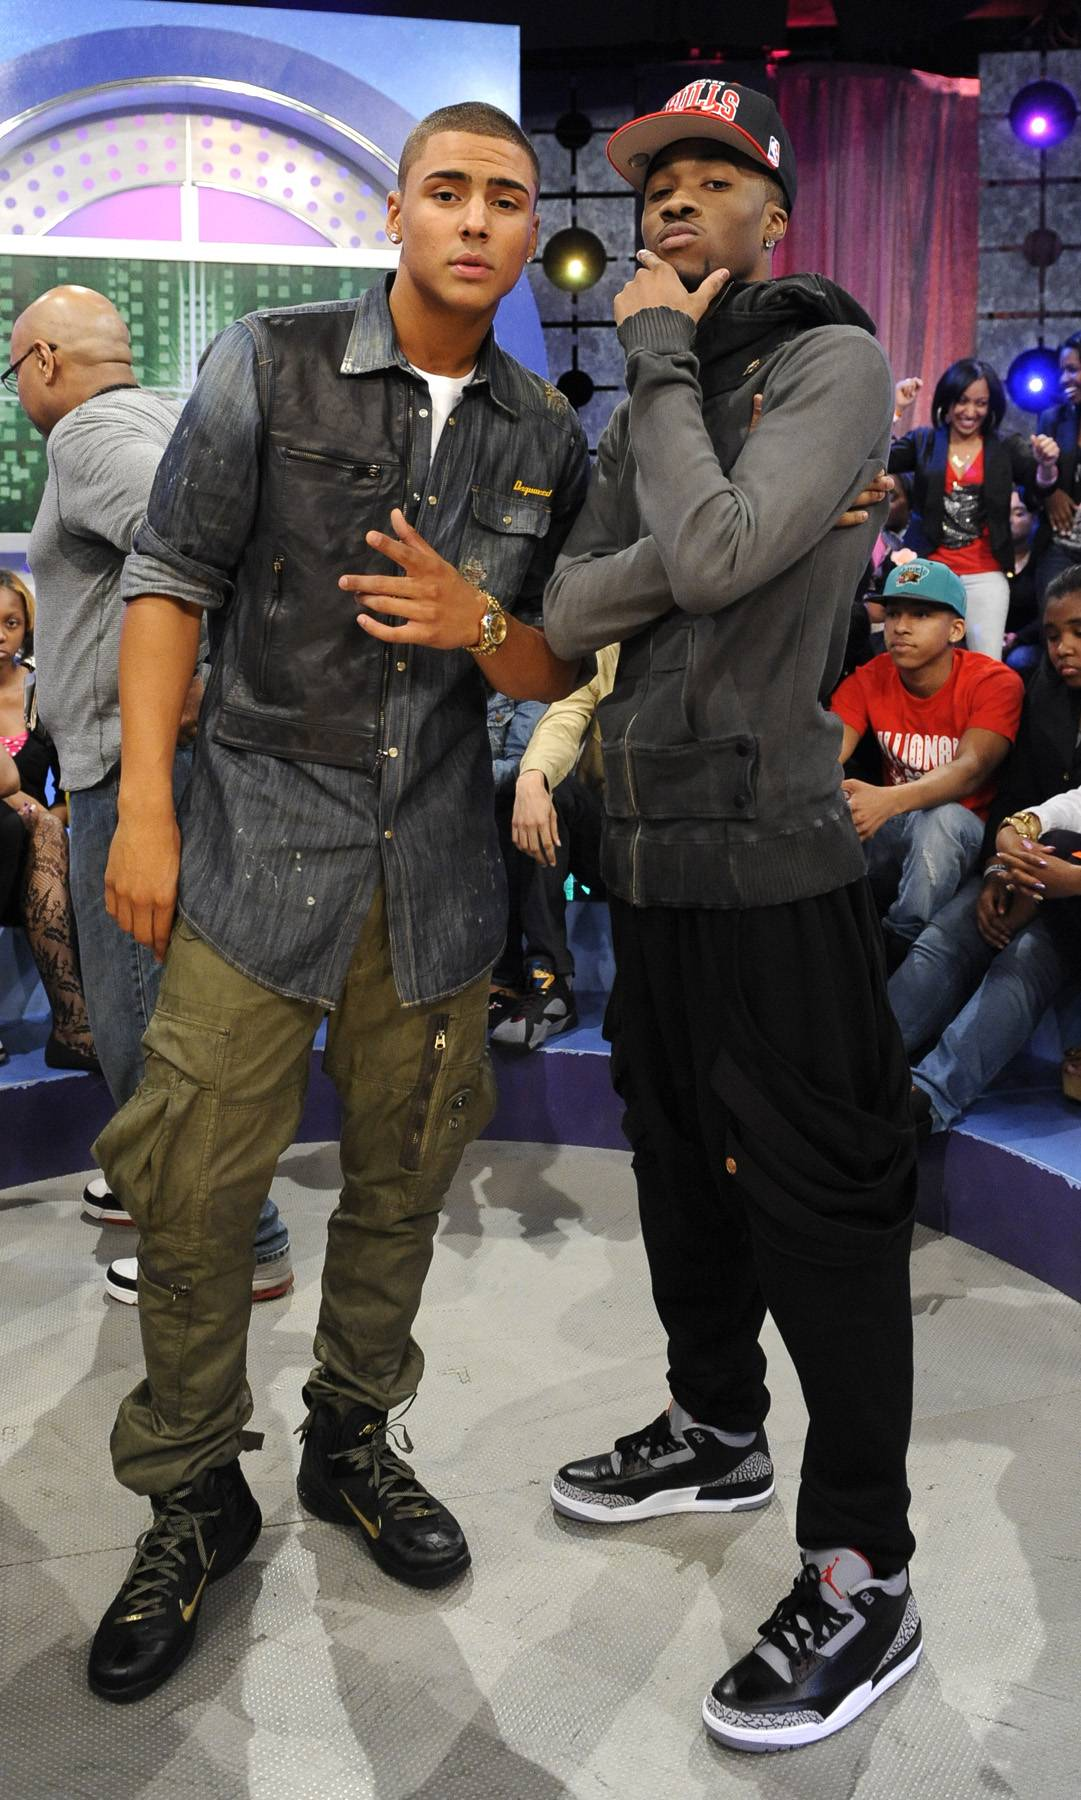 Cool Guy Pose - Kendre and Quincy at 106 & Park, May 3, 2012. (Photo by: John Ricard / BET)